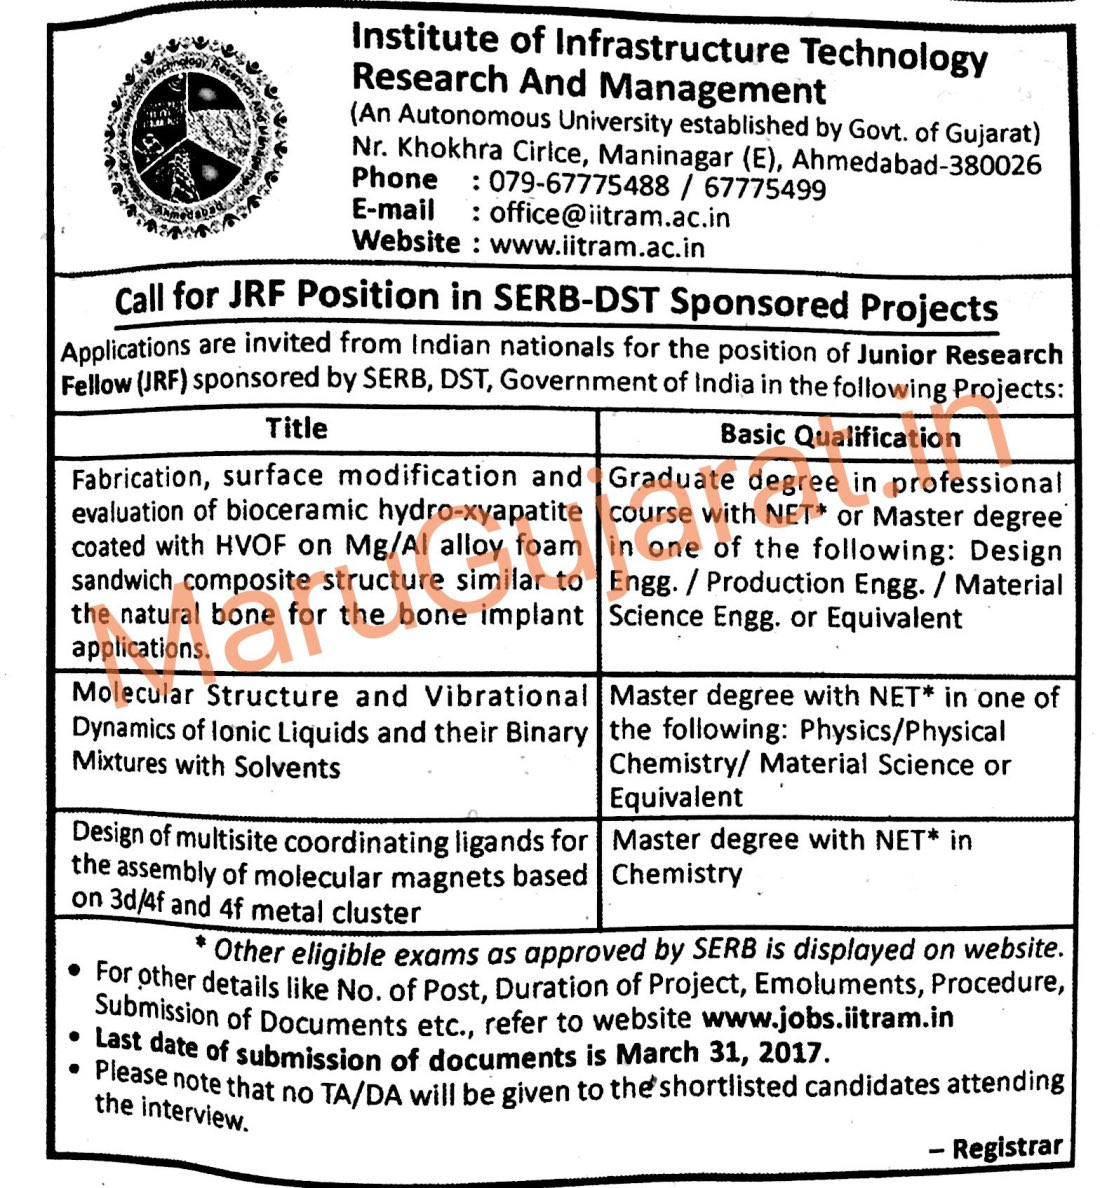 IITRAM Ahmedabad Advertisement for JRF Position 2017